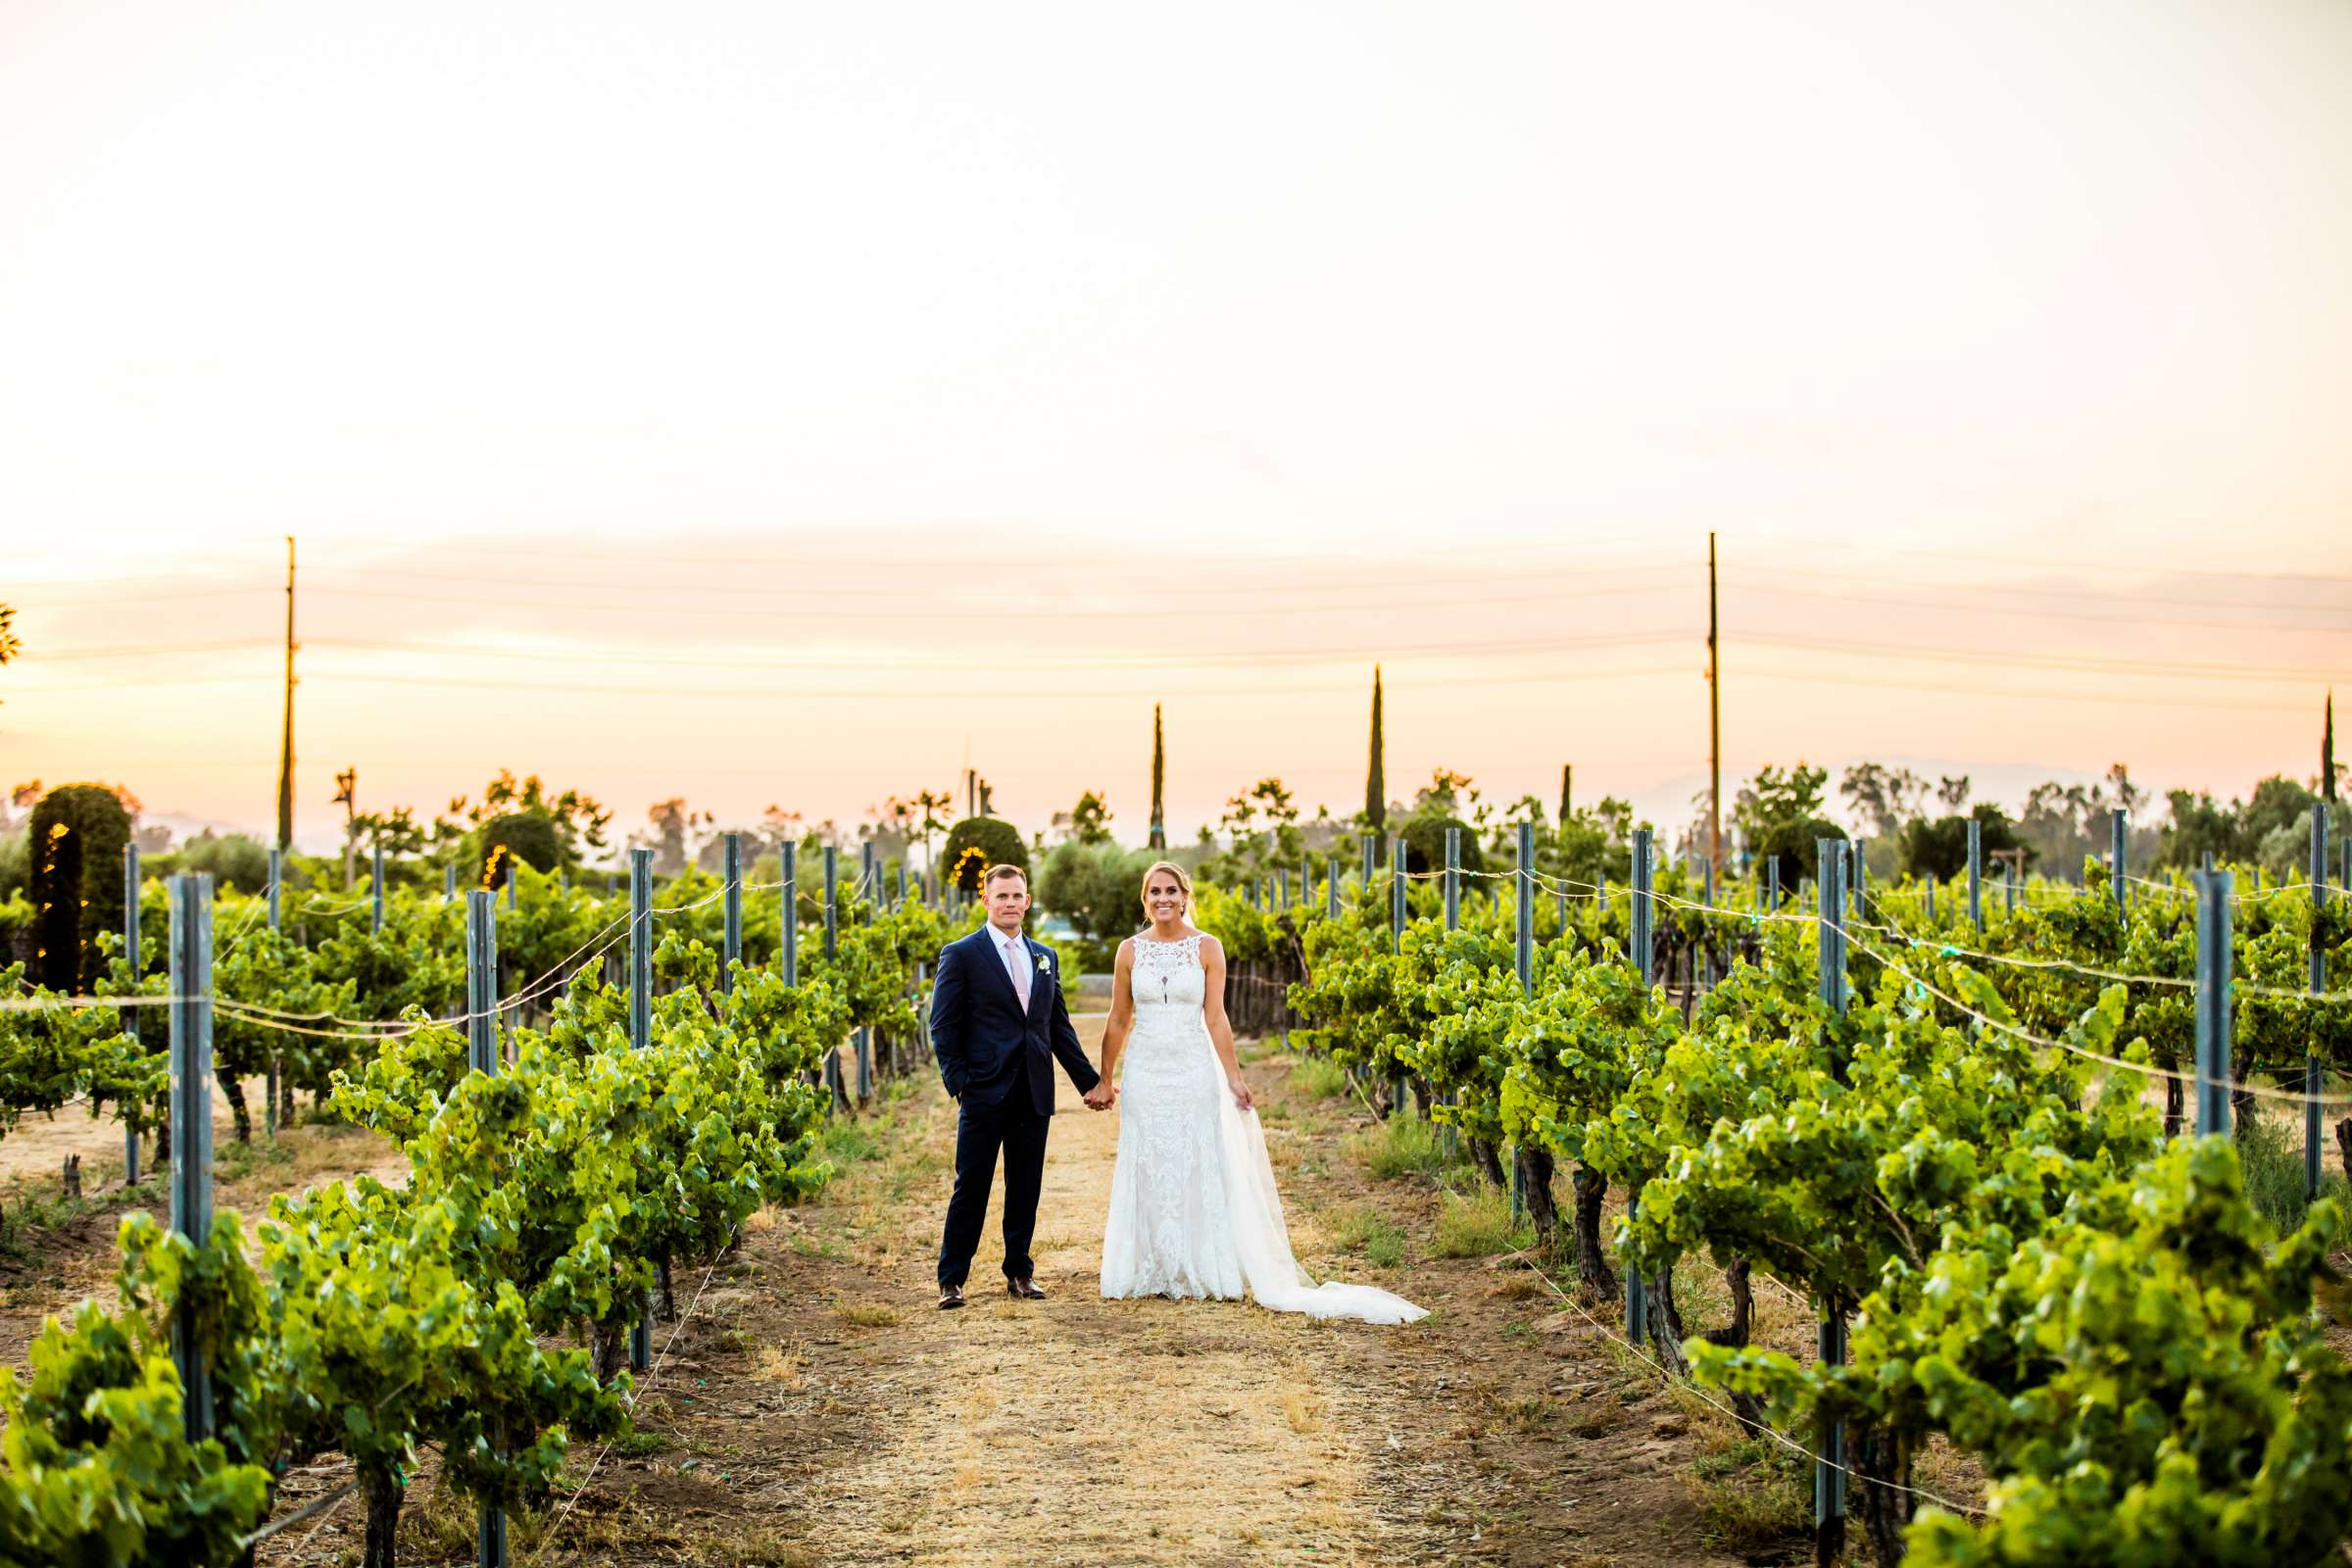 Ponte Estate Winery Wedding, Kelsey and Andrew Wedding Photo #111 by True Photography